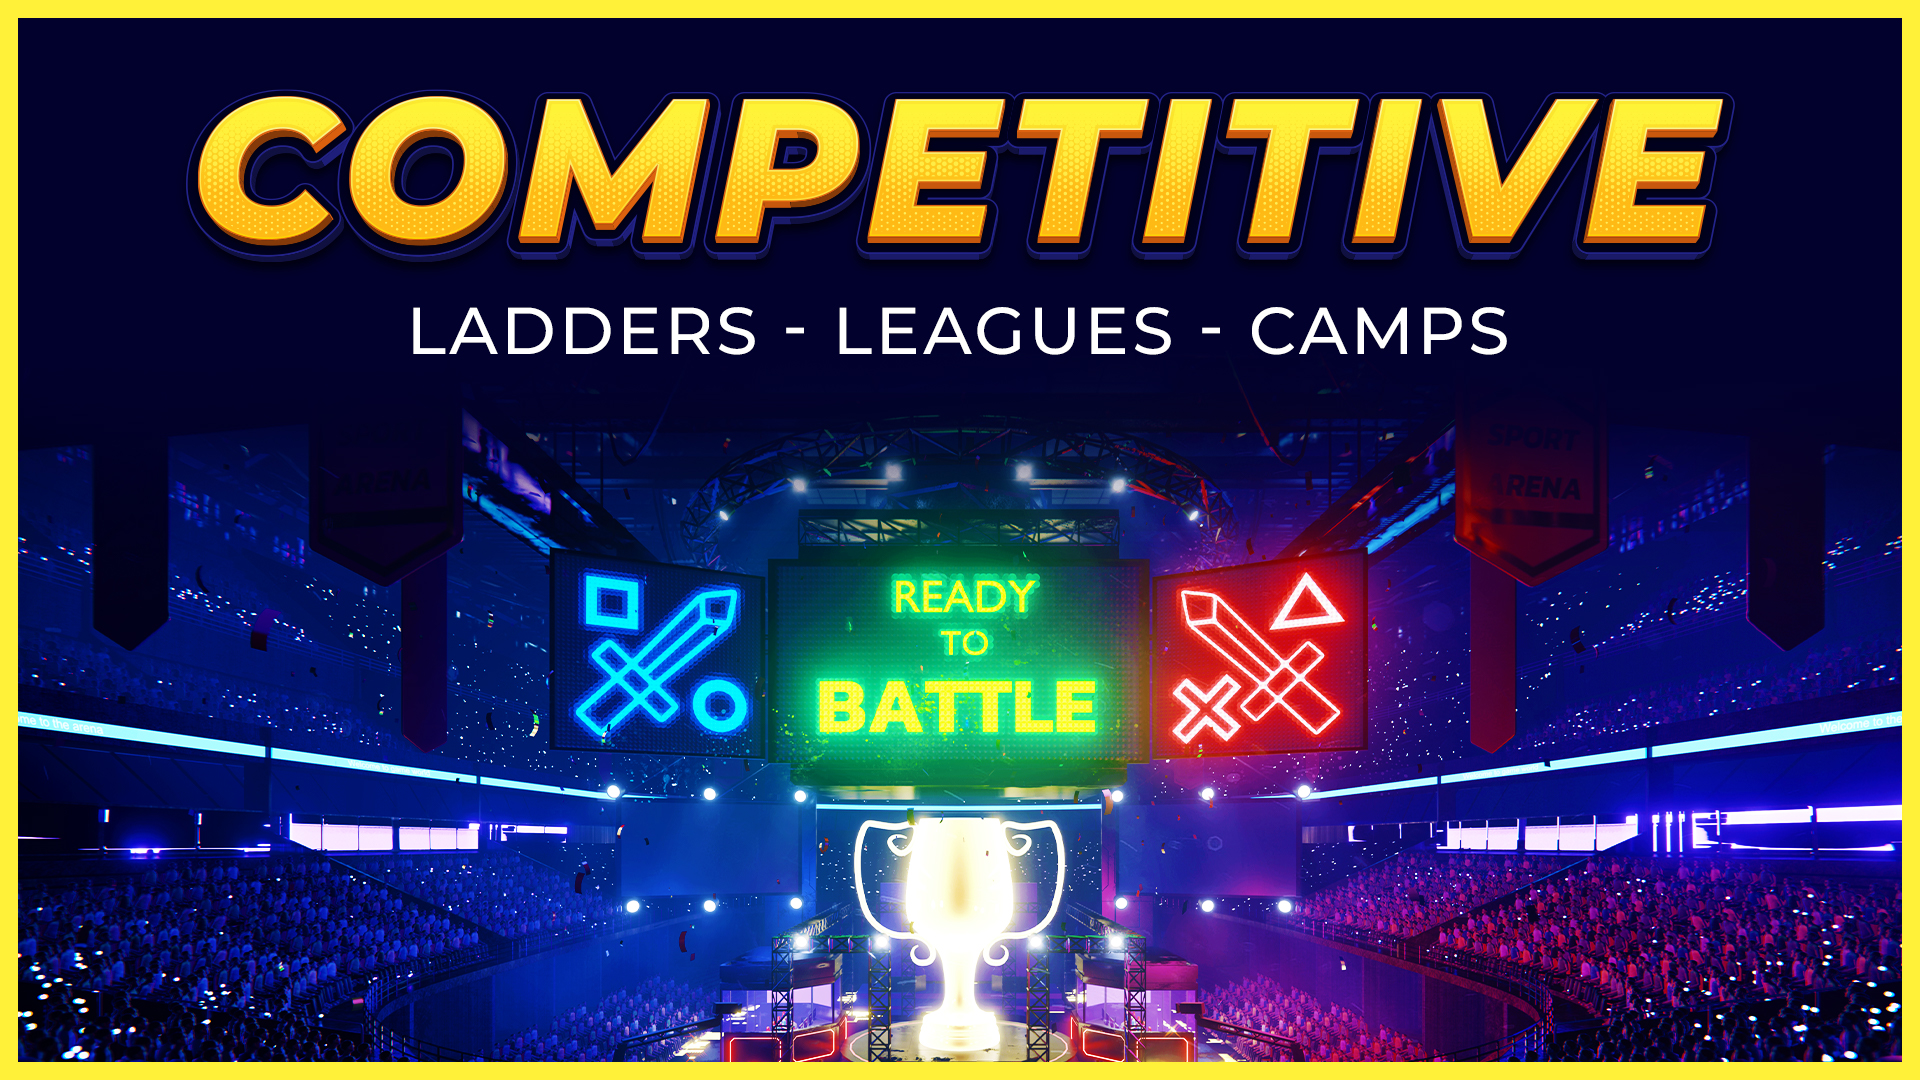 Competitive Ladders, Leagues, and Camps